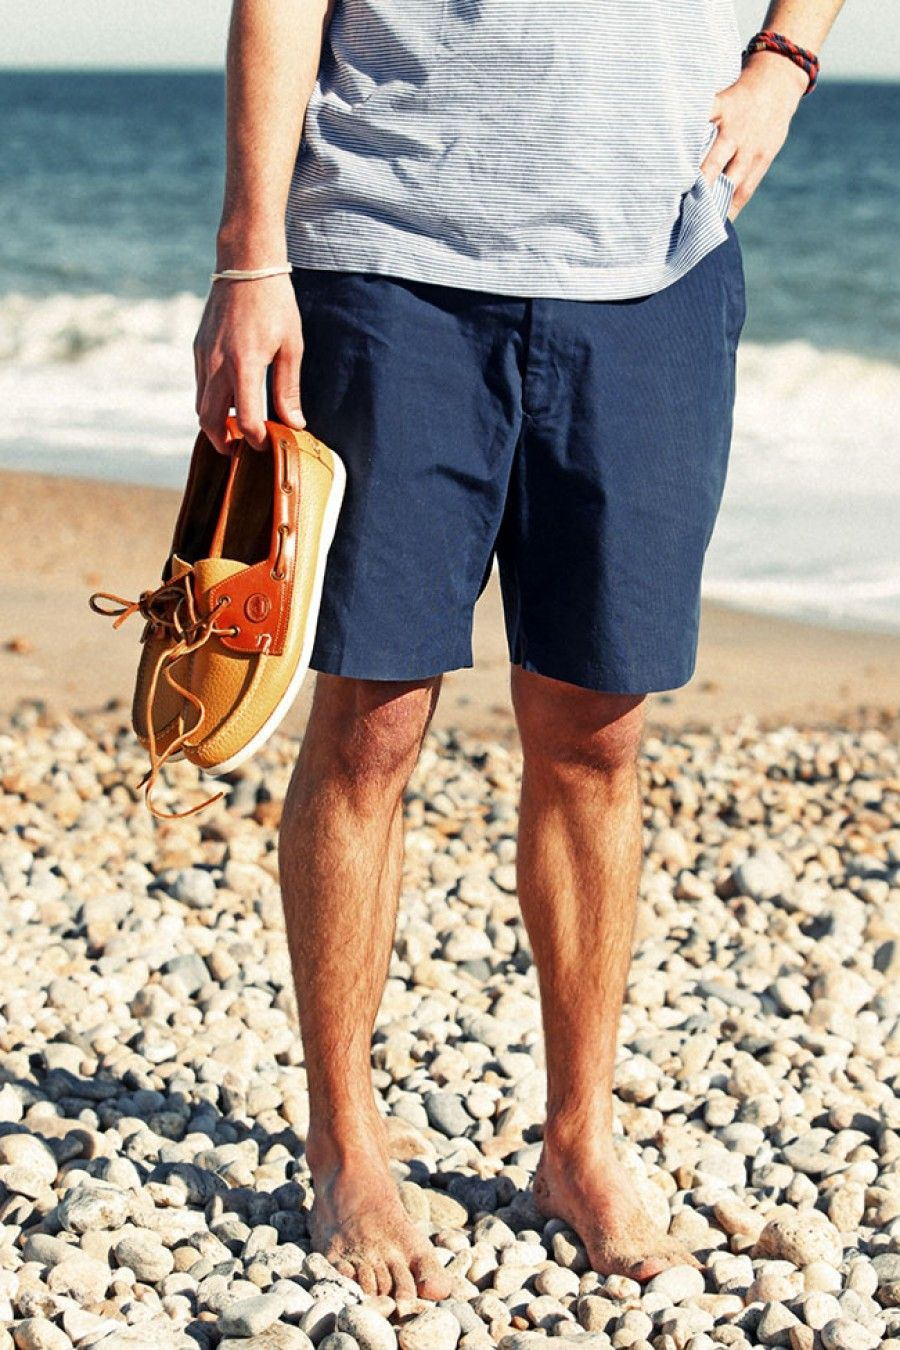 17 Best images about Summer style on Pinterest | Canvas boat shoes ...